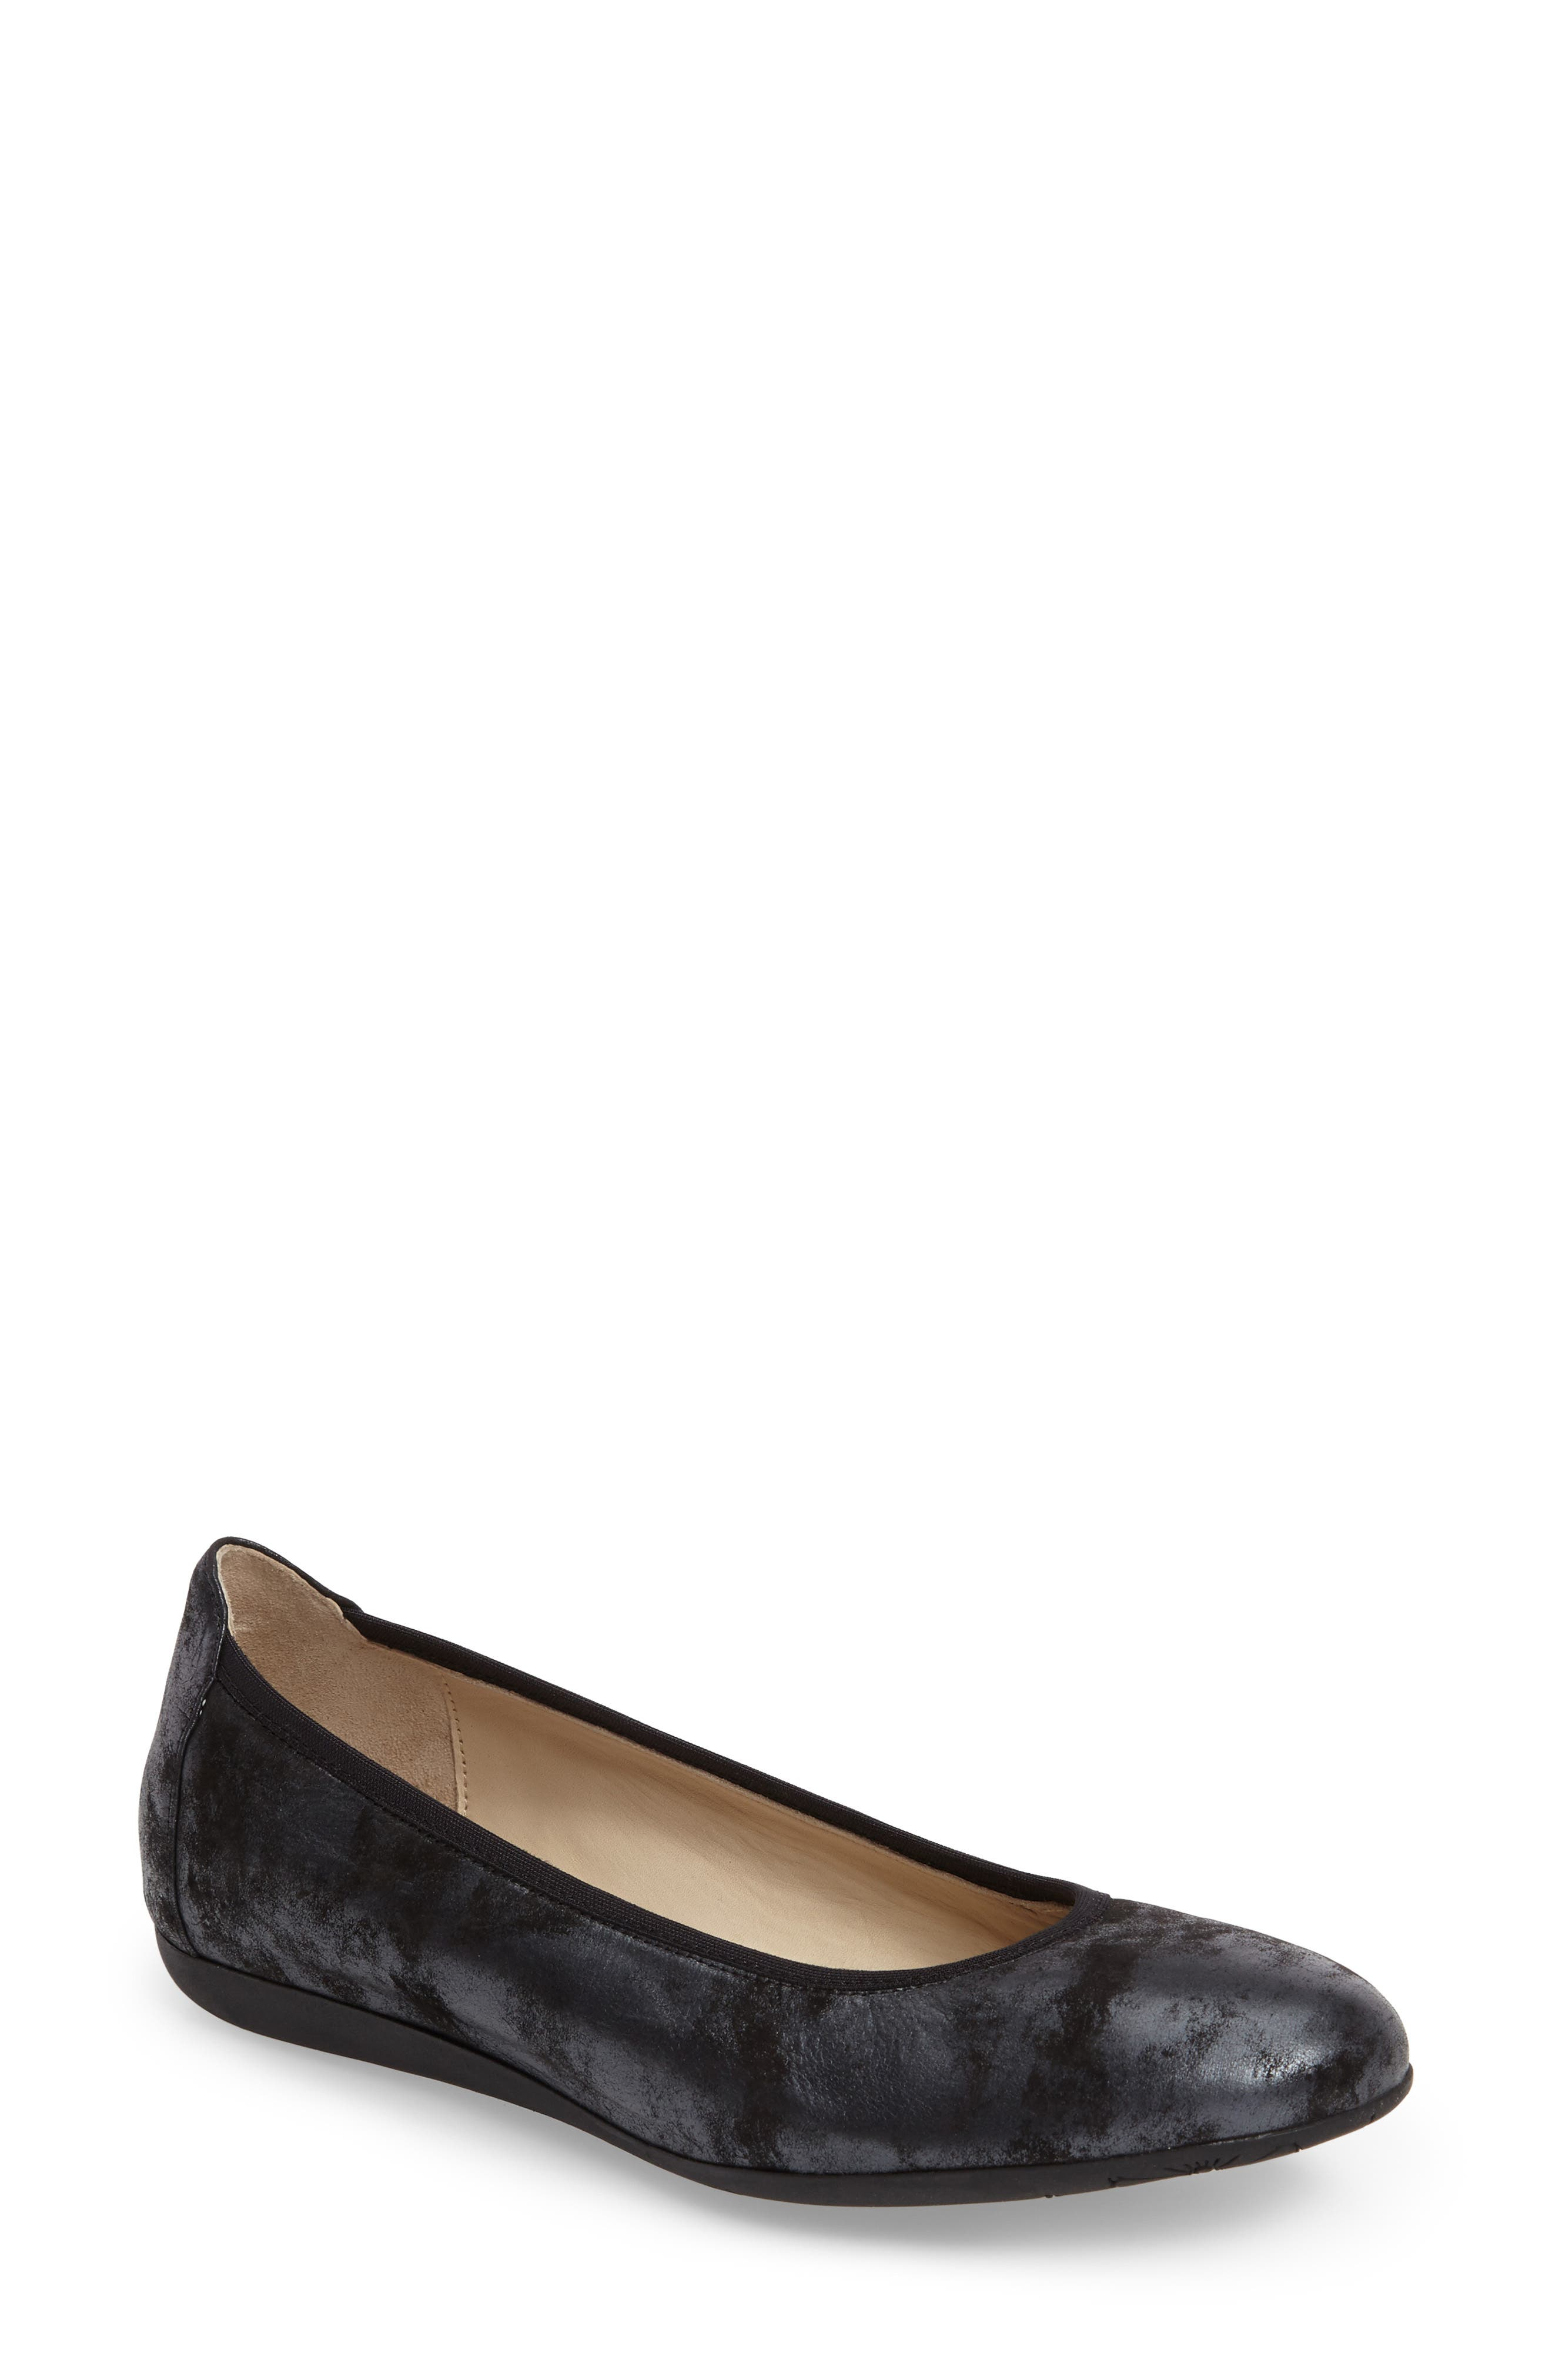 Alternate Image 1 Selected - Wolky Tampa Sacchetto Ballet Flat (Women)